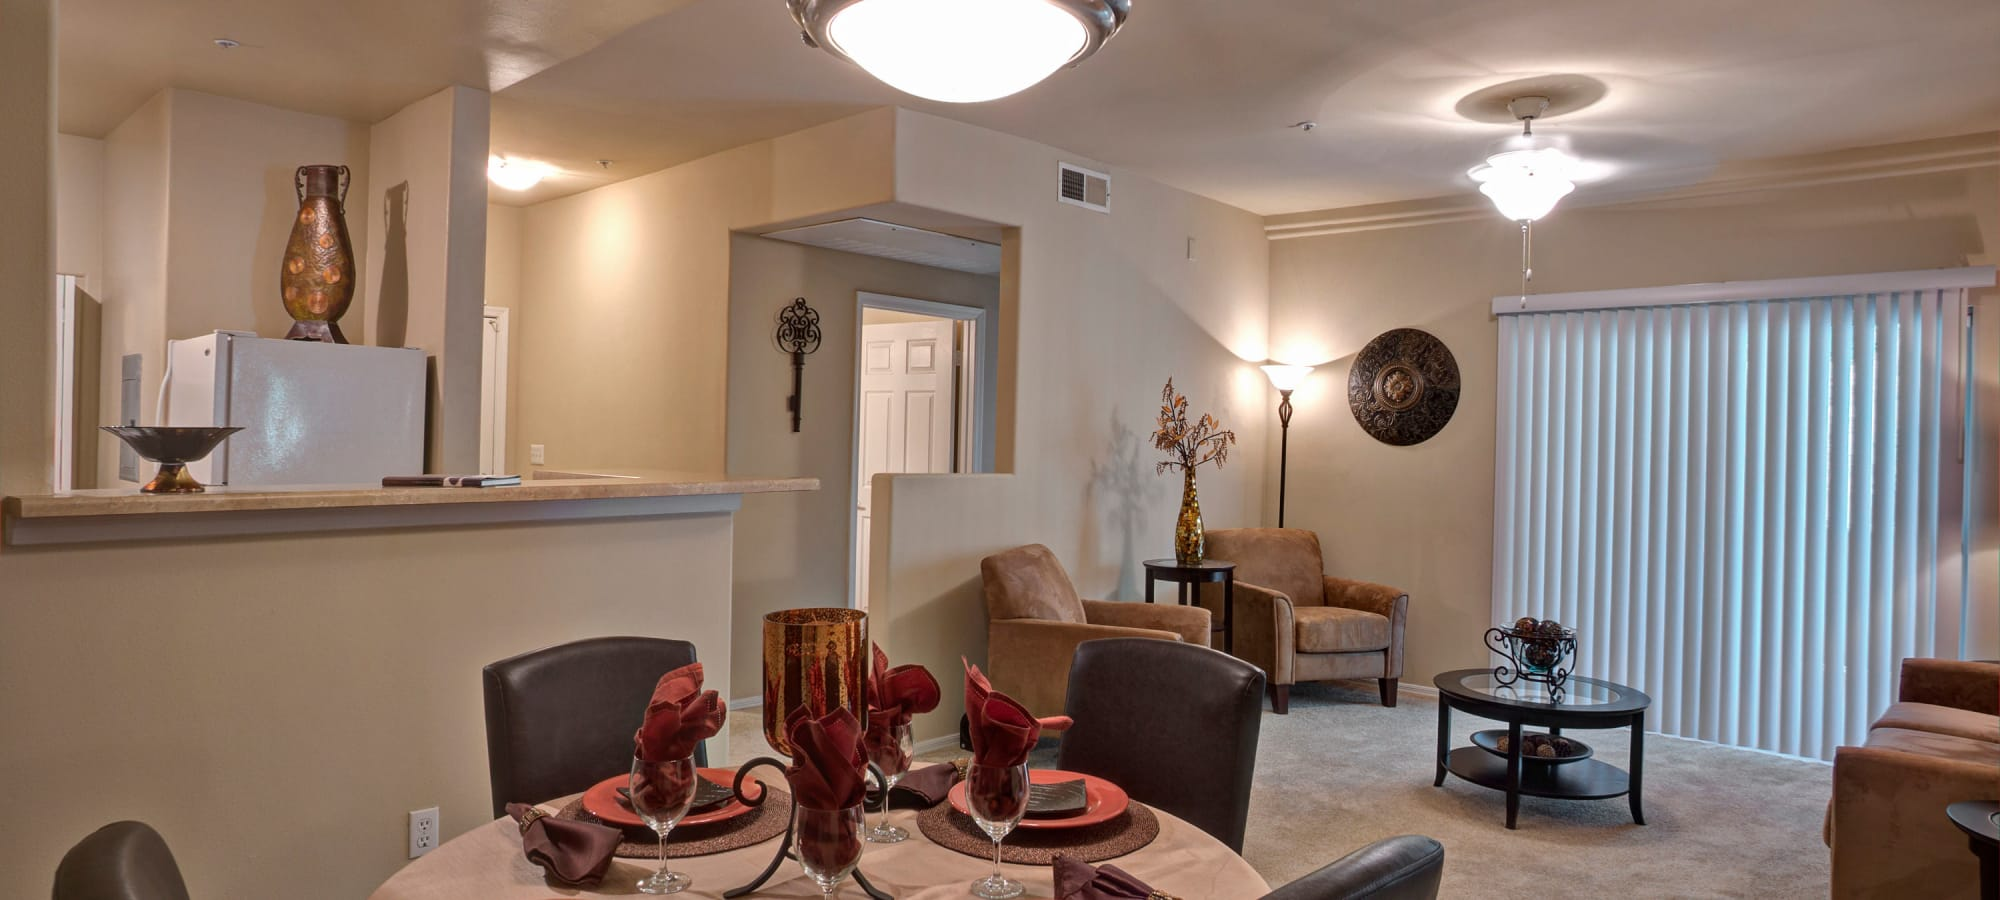 Beautiful dining room with living room in model home at The Regents at Scottsdale in Scottsdale, Arizona